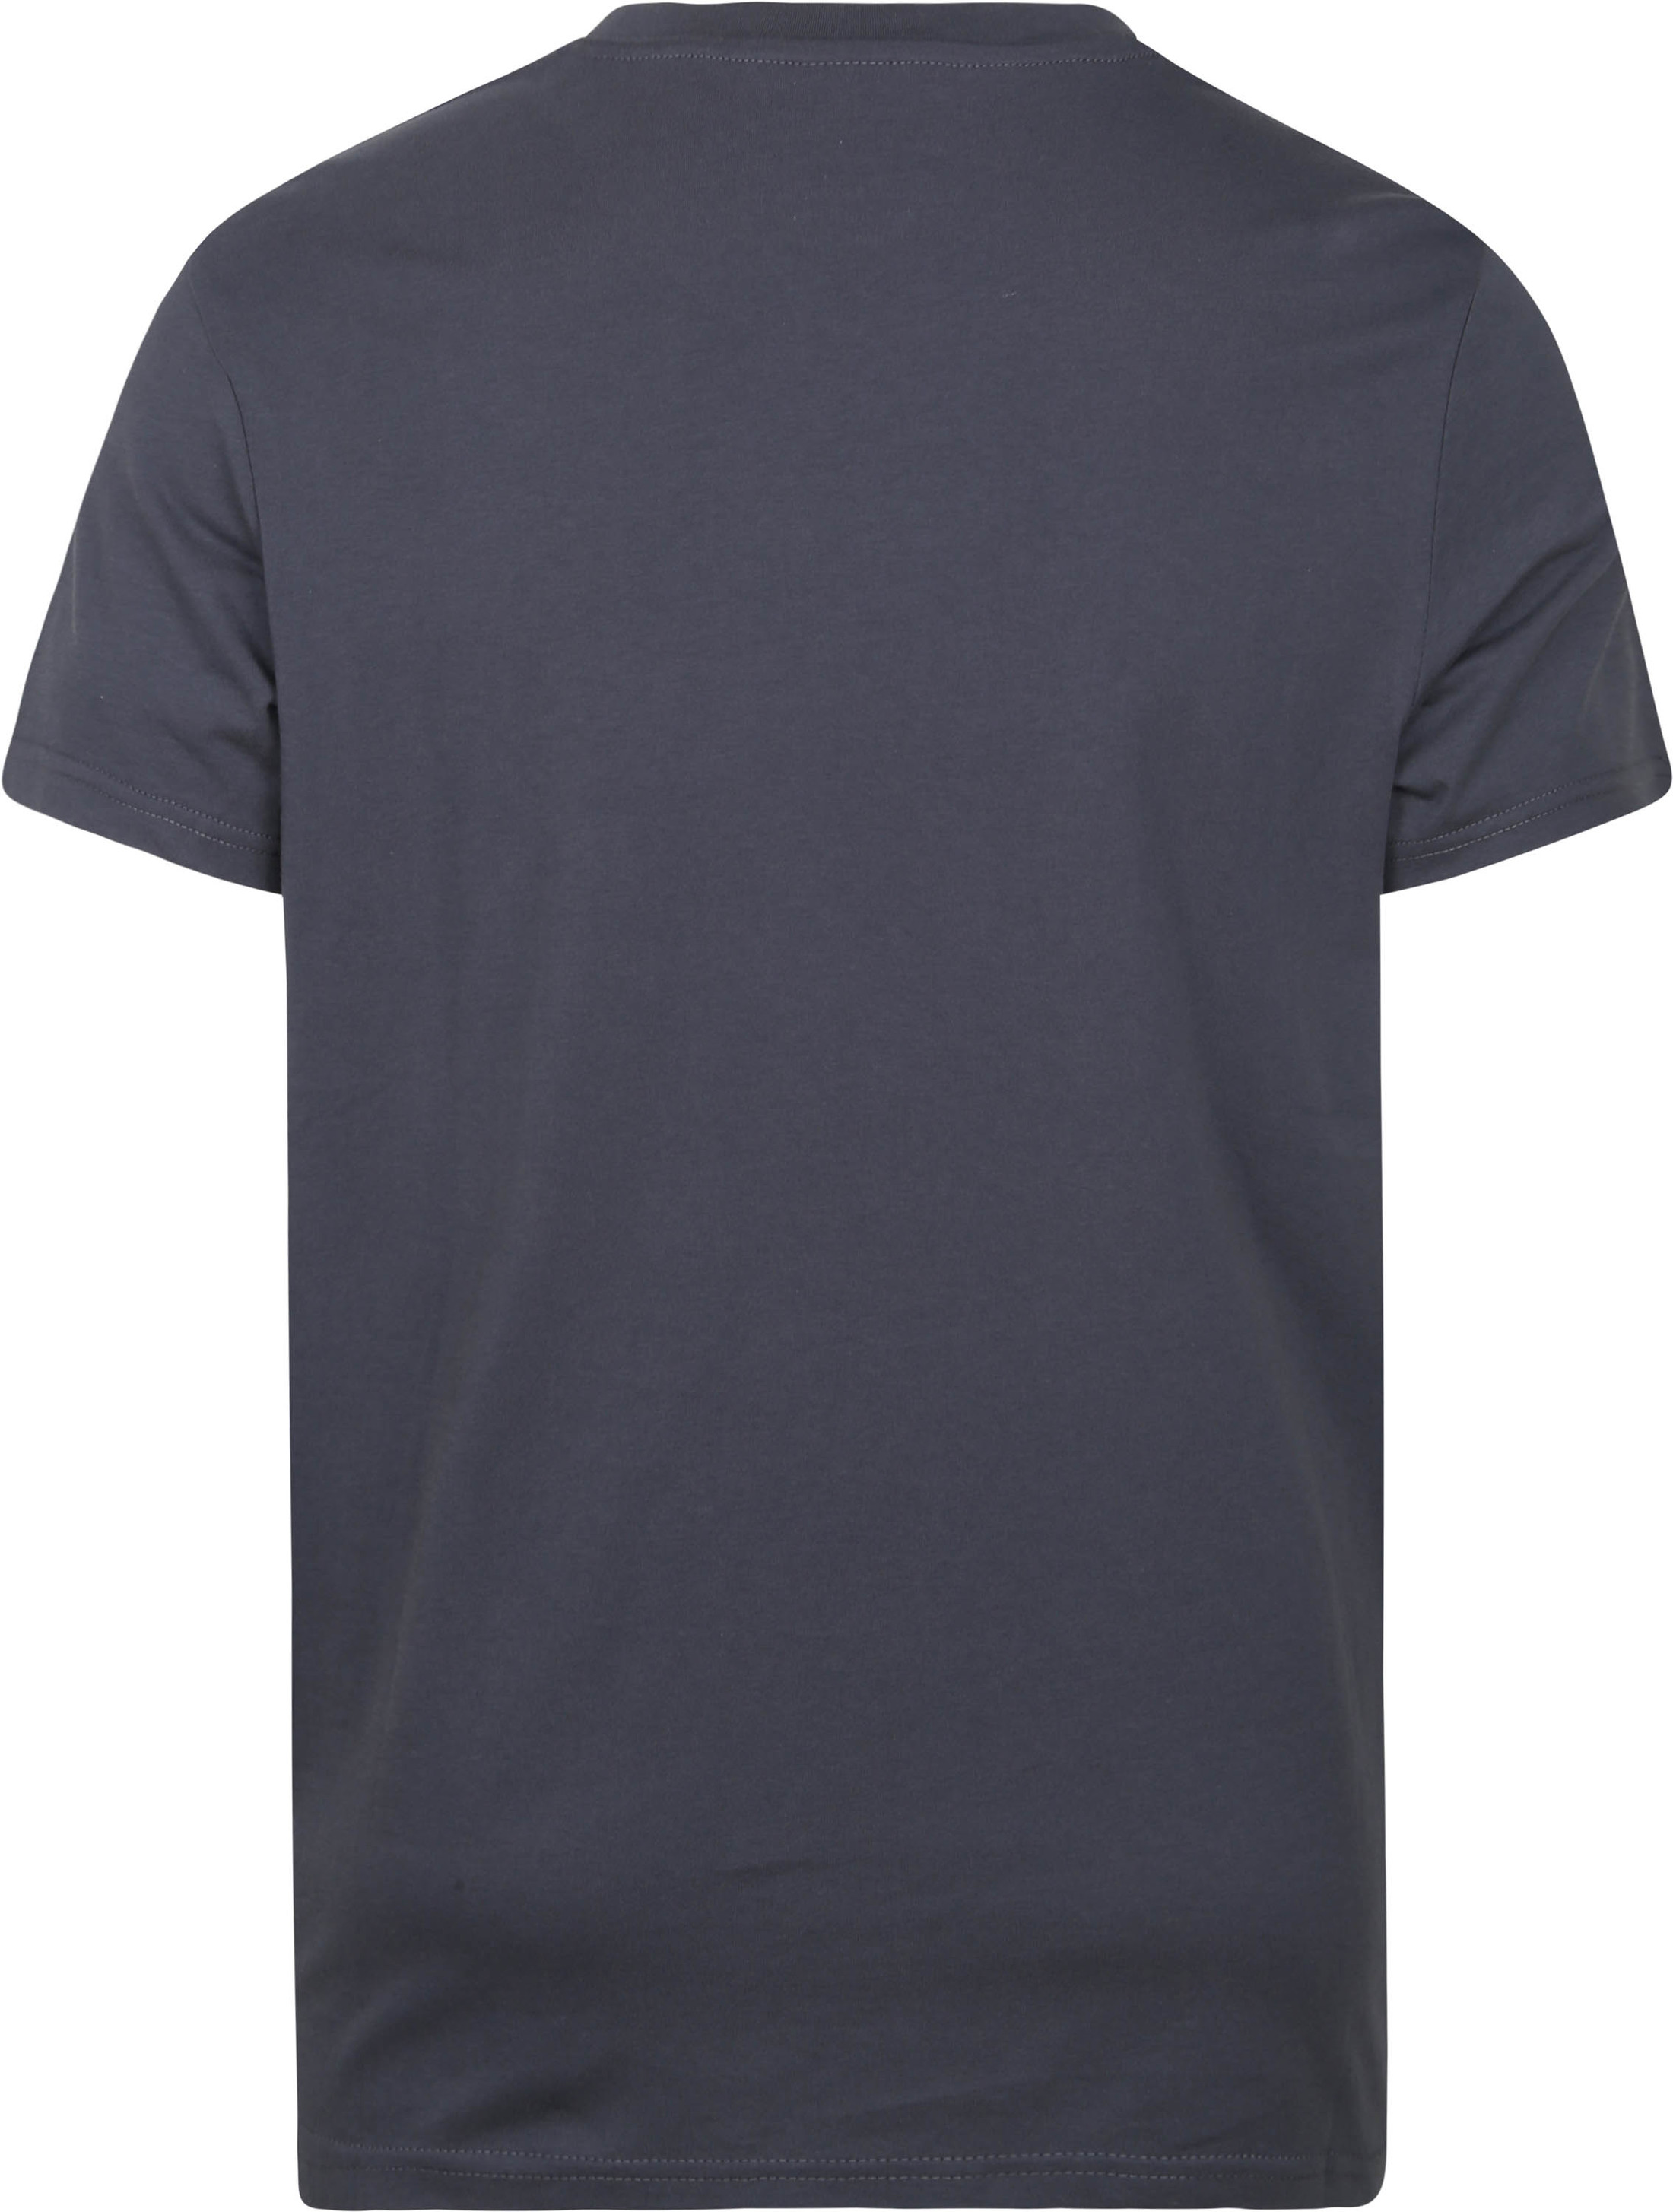 Hugo Boss T-shirt UV-Protection Donkergrijs